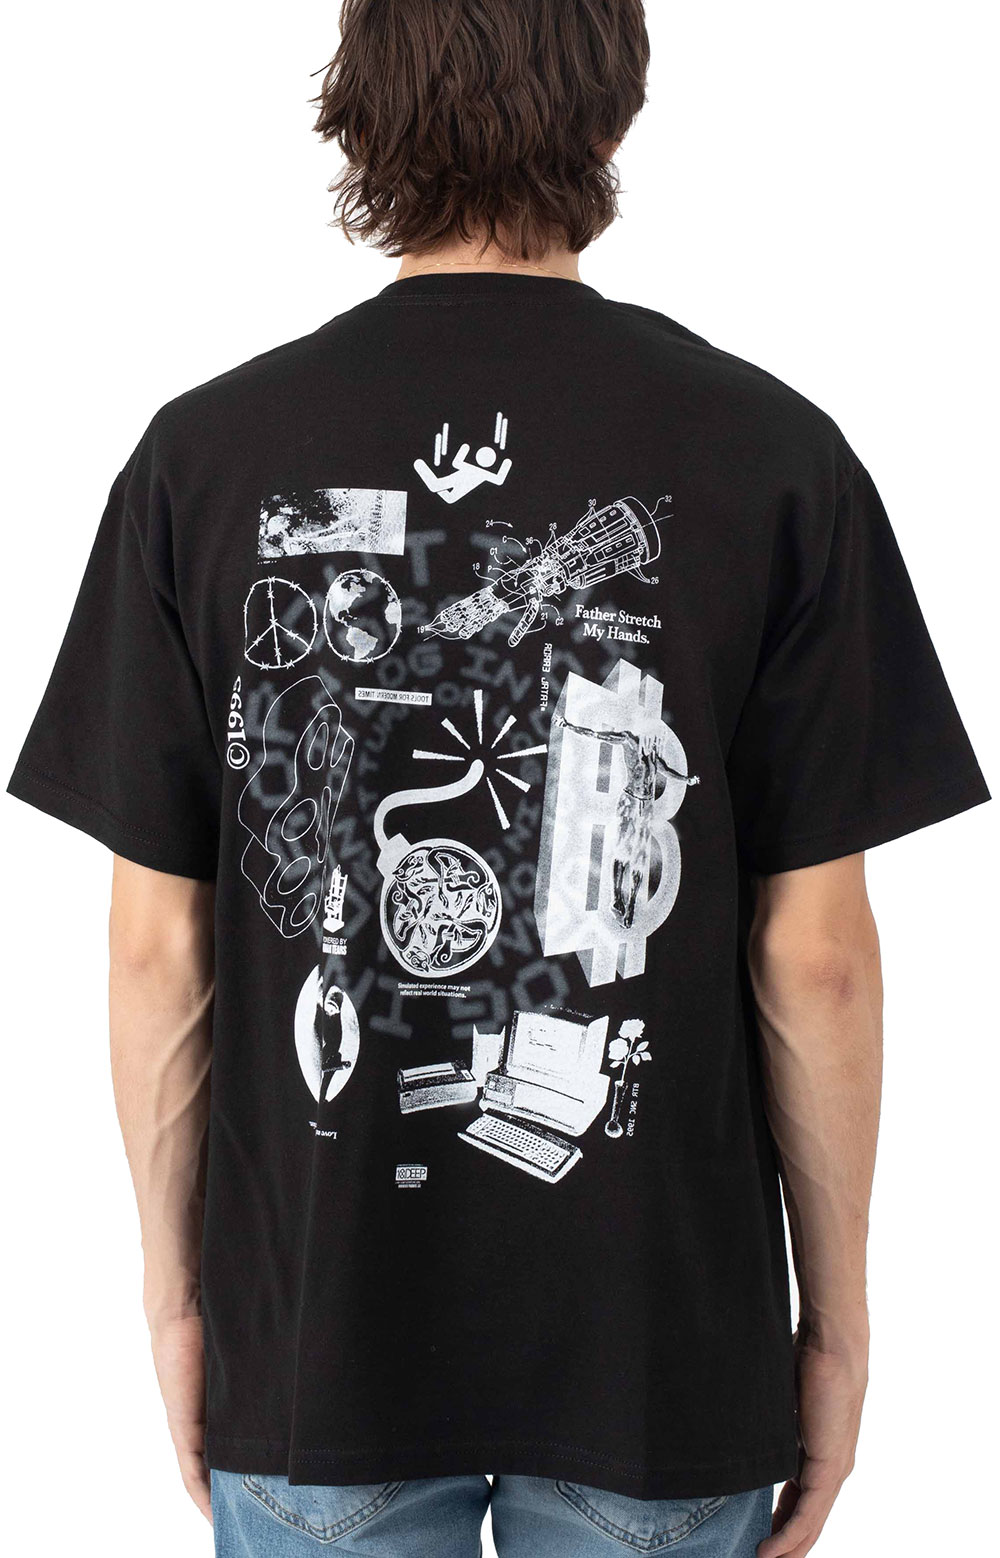 Log In Drop Out T-Shirt - Black